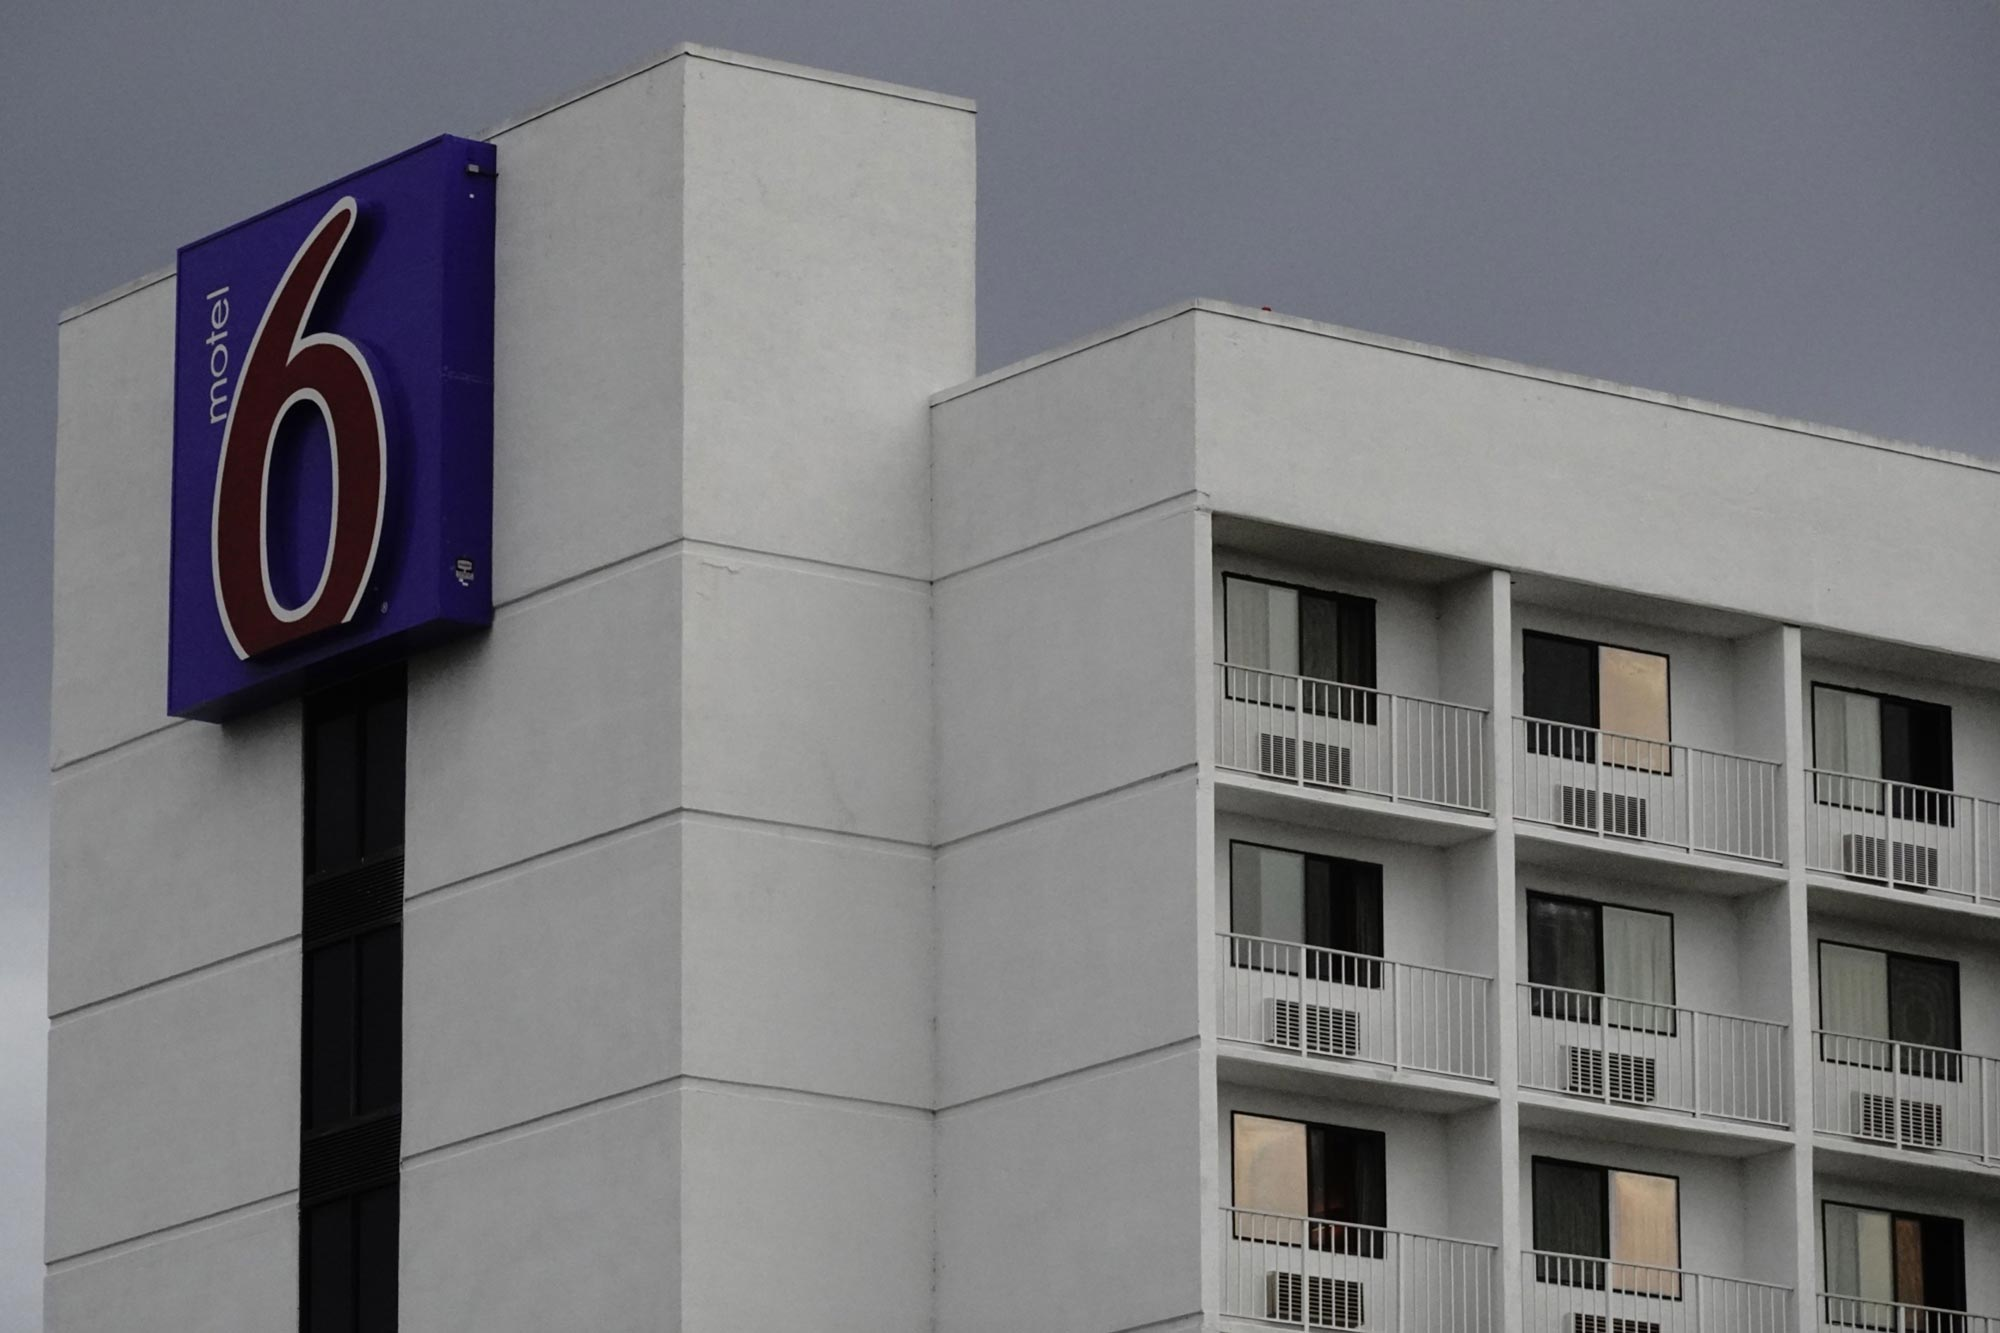 Motel 6 chooses Barkley as new agency of record